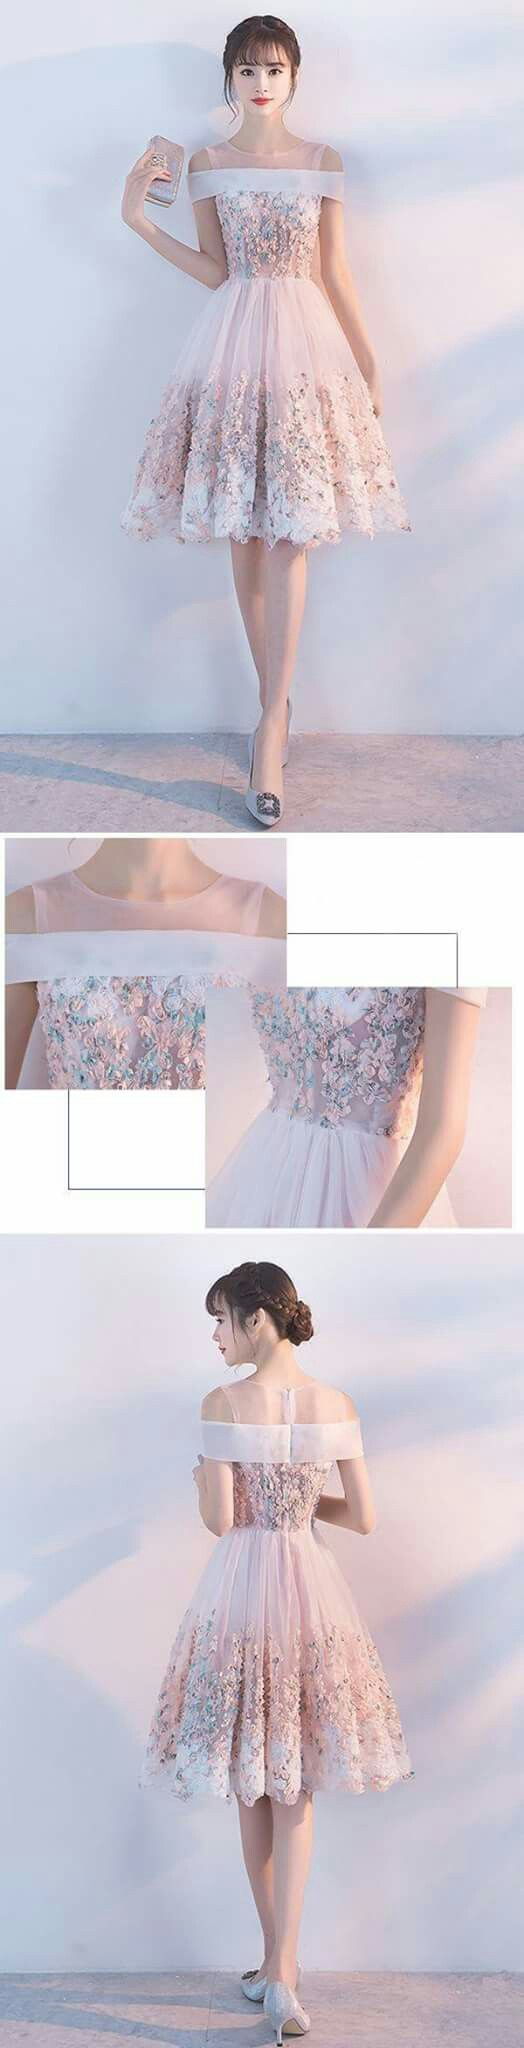 Find More at => http://feedproxy.google.com/~r/amazingoutfits/~3/33B6gsX9oNM/AmazingOutfits.page